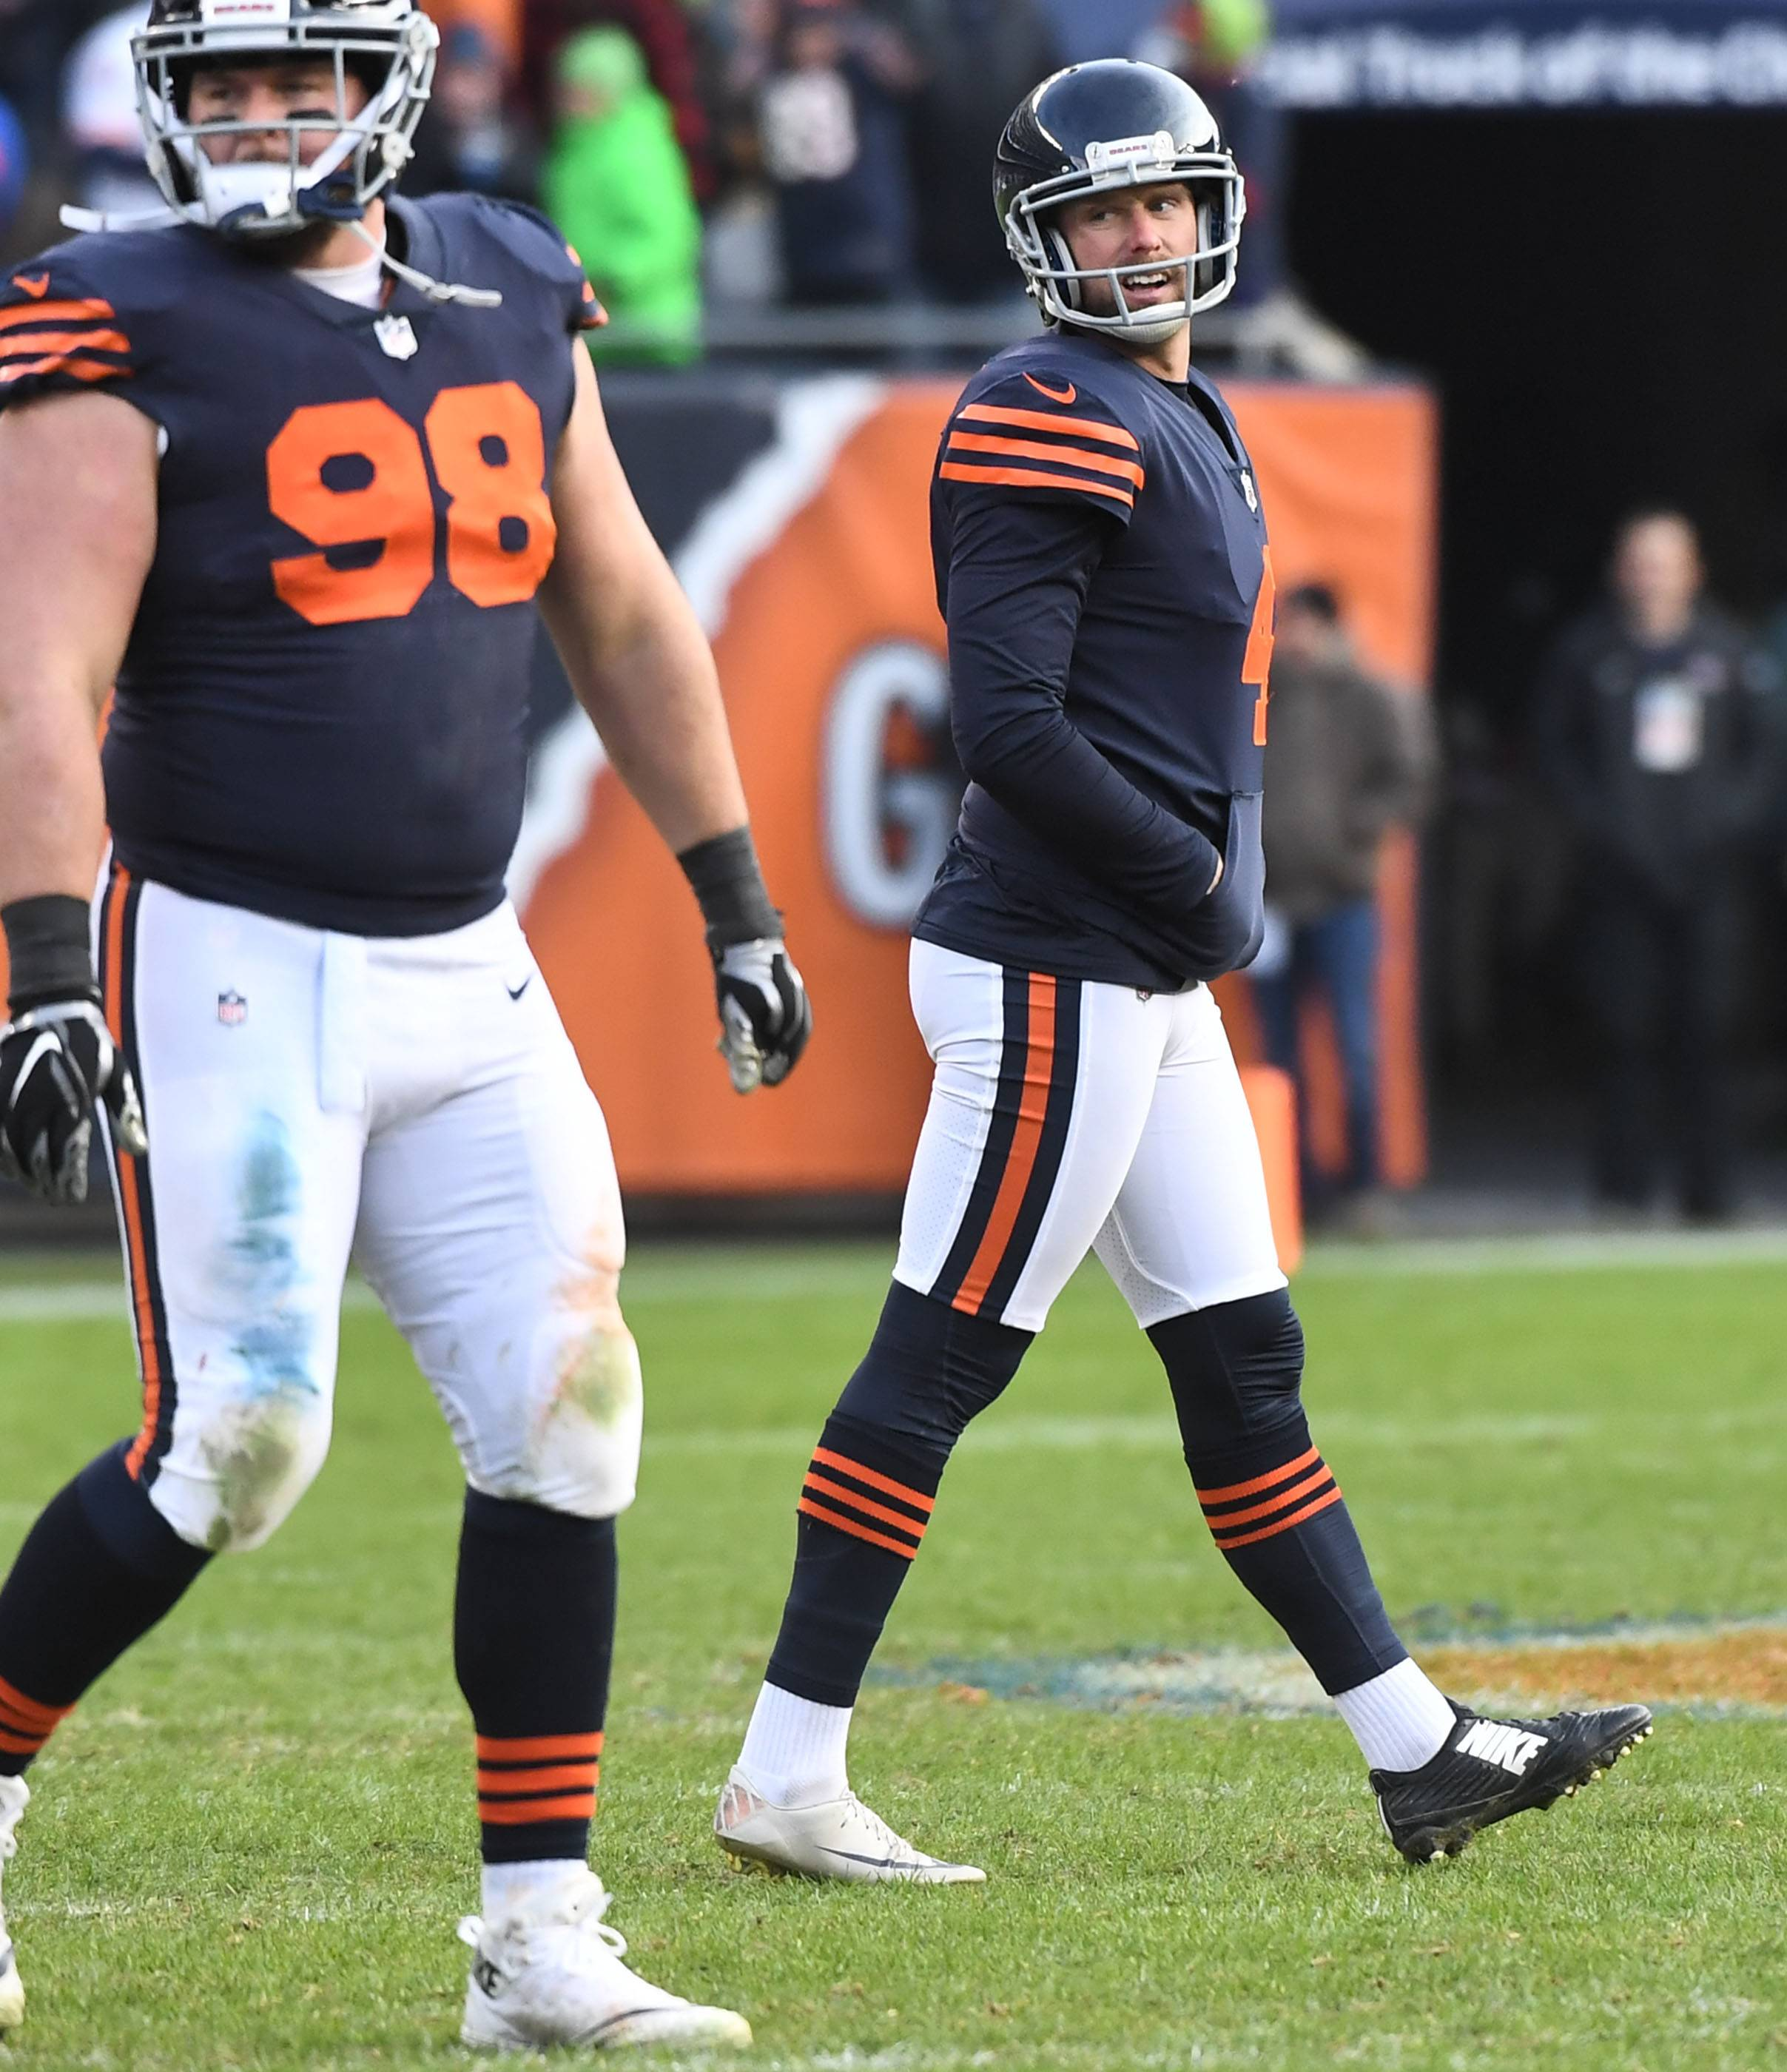 Chicago Bears kicker Connor Barth looks over his shoulder at the goal posts after missing a potential game-tying field goal against the Detroit Lions Sunday at Soldier Field in Chicago.